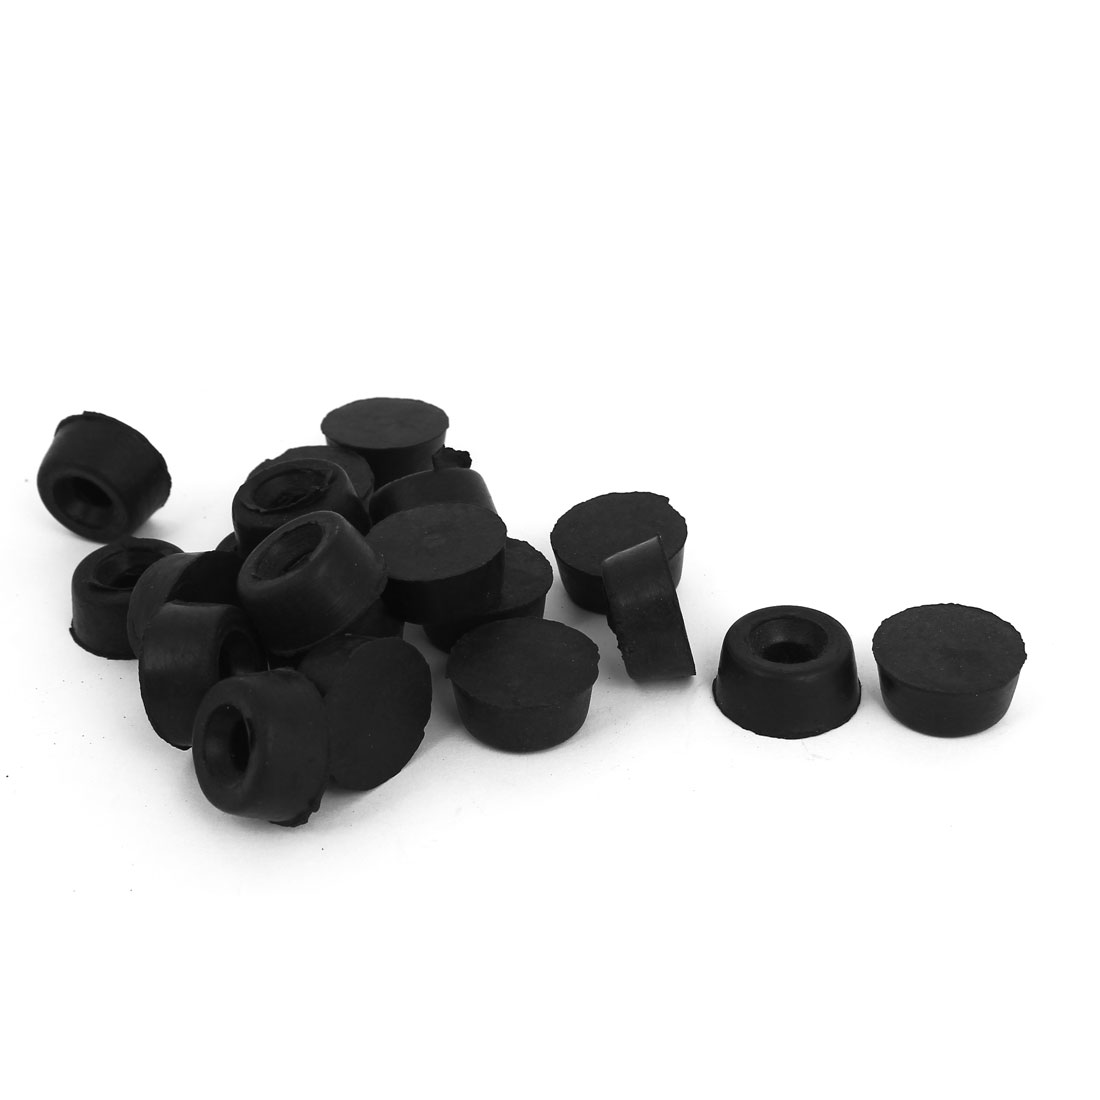 10mm Inner Dia Round Rubber Chair Table Foot Leg Cover Holder 20 Pcs